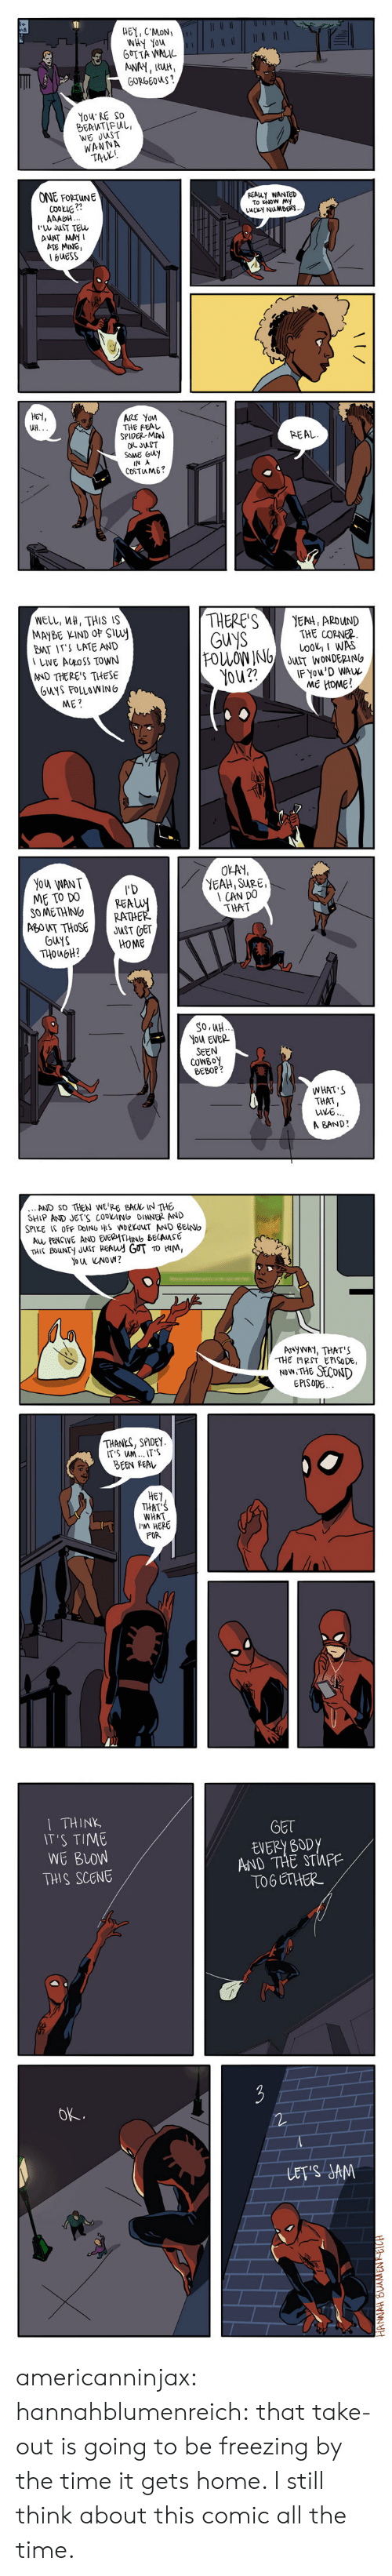 Spider, Tumblr, and Wow: HE C'MON  WHY tou  GUTTA WALL  GORGEous?  You RE So  BERWTIFul  WE JuST  WANNA  ONE FORTUNE  CooLIE ??  REALY WANTeD  το wow My  วา  JST TEW  AUNT MAY I  ATE MINE,  GuESS  HEY,  ин.  ARE Yon  THE REAレ  SPIDER MA  OR JUST  PEAL  SOME OuY  IN A  COSTuME   NELL, WH, THIS IS  MAYBE KIND oF Suy  BAT ITS LATE AND  LWE AUROSS TOWN  AND THERE'S THESE  GuYS FOLLOWING  ME?  THERE'SEAH, ARDUND  GuYSTHE CORNE2  FOLLOWING O W  L00I WAS  JUST WONDERANG  ME HoMe  YOu WANT  ME TO DO ER  OMETHIN RATHE  REOT THOSEJSTOET  YEAH, SURE,  CAN DO  THAT  GUYS  านุ046H?  HOME  濠|  So, UH  NOU EVER  SEEN  COWBoy  BEBOP  WHAT'S  THAT,  we..  A BAND?   AND SO THEN WE RE BA IN THE  SHIP AND JErS CODVING DINNER AND  SPIKE  oFF DOING HIS WORLOuT AND BElNo  Aw fENCIVE AND EVER너THINO BECAUSE  THIS BOUNTY JuSr PEAWd GOT TO HM,  AwywA1, THATS  THE ARST EPISoDE,  No THE SECDND  EPISODE  THANKS, SPIDEY  IT'S uM... IT S  BEEN REAレ  HEI  THAT'S  WHAT  I'M HERE  FOR   THINK  T'S TIME  WE BLOW  THIS SCENE  GET  EVERy B0D  AND THE STWPF  TOG STHER  ok.  LETIS SAM americanninjax: hannahblumenreich:  that take-out is going to be freezing by the time it gets home.   I still think about this comic all the time.